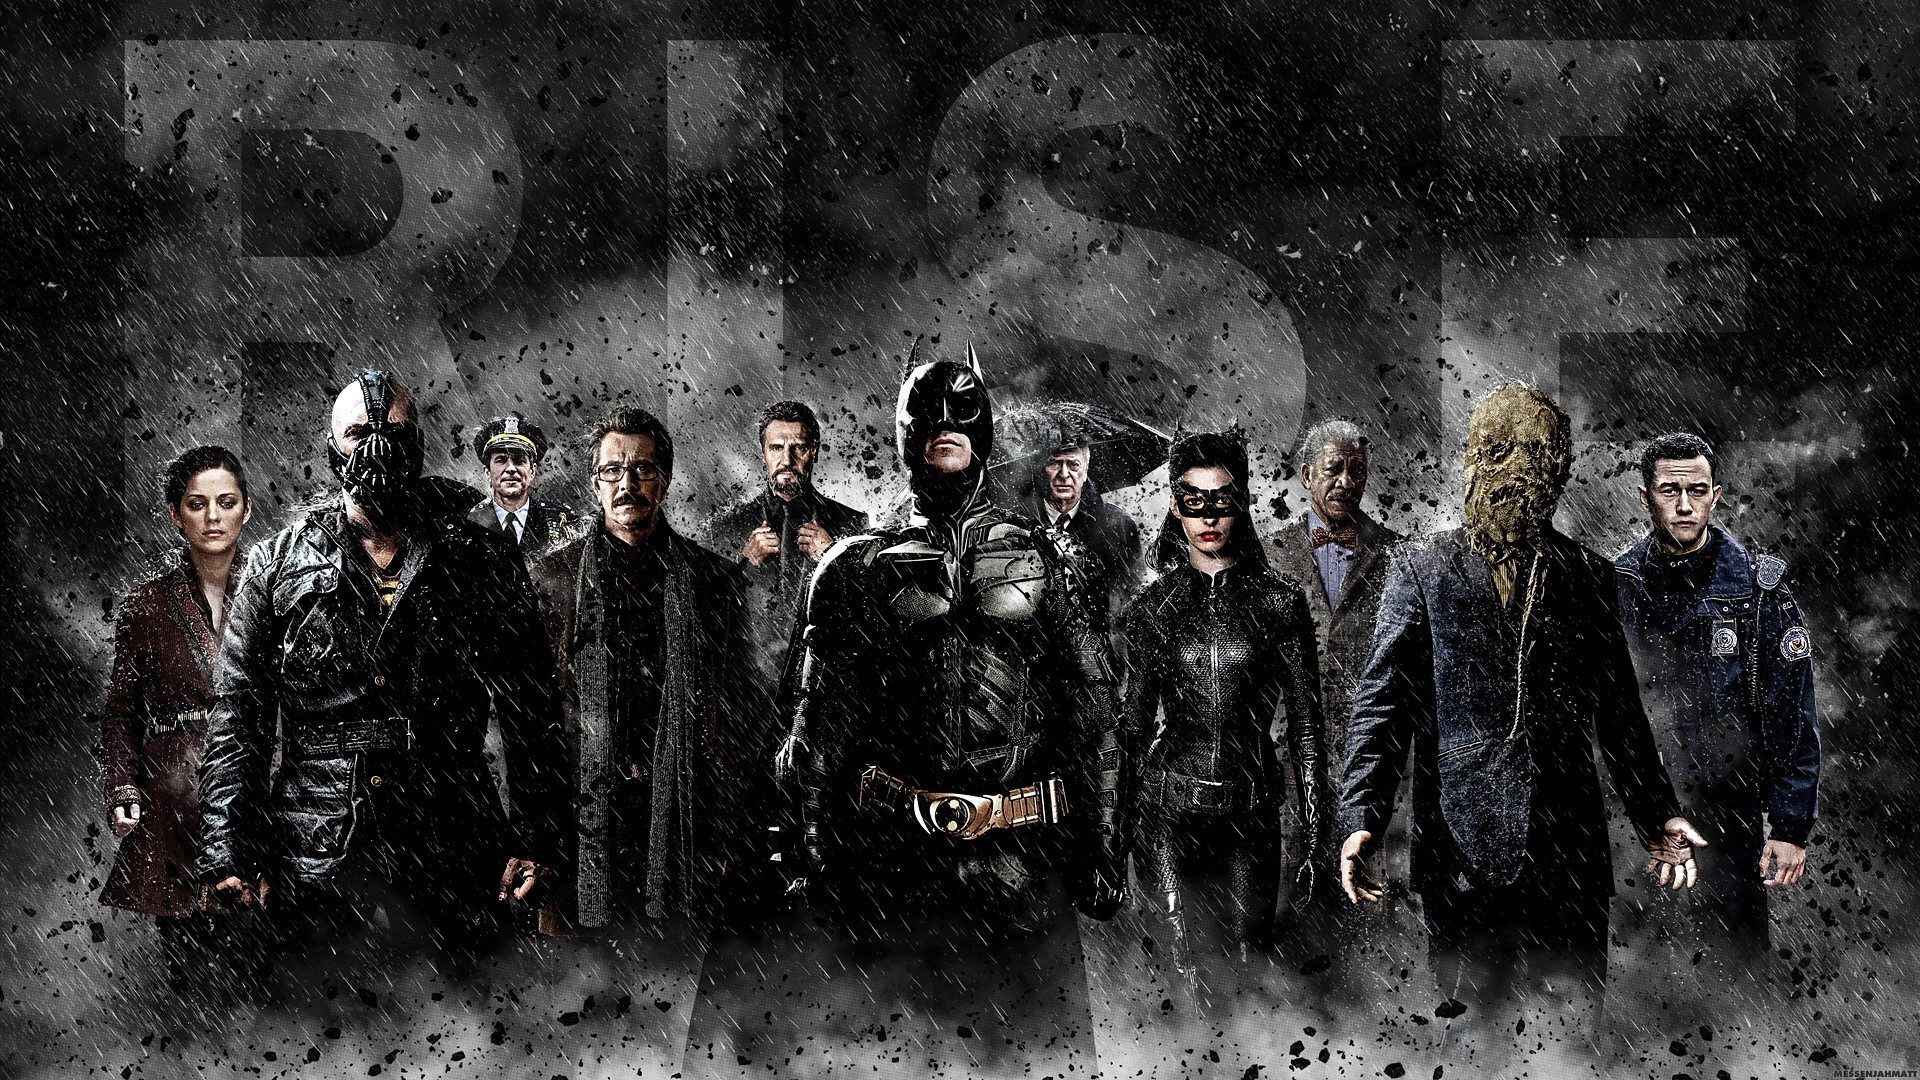 Wallpaper The Dark Knight Rises Images